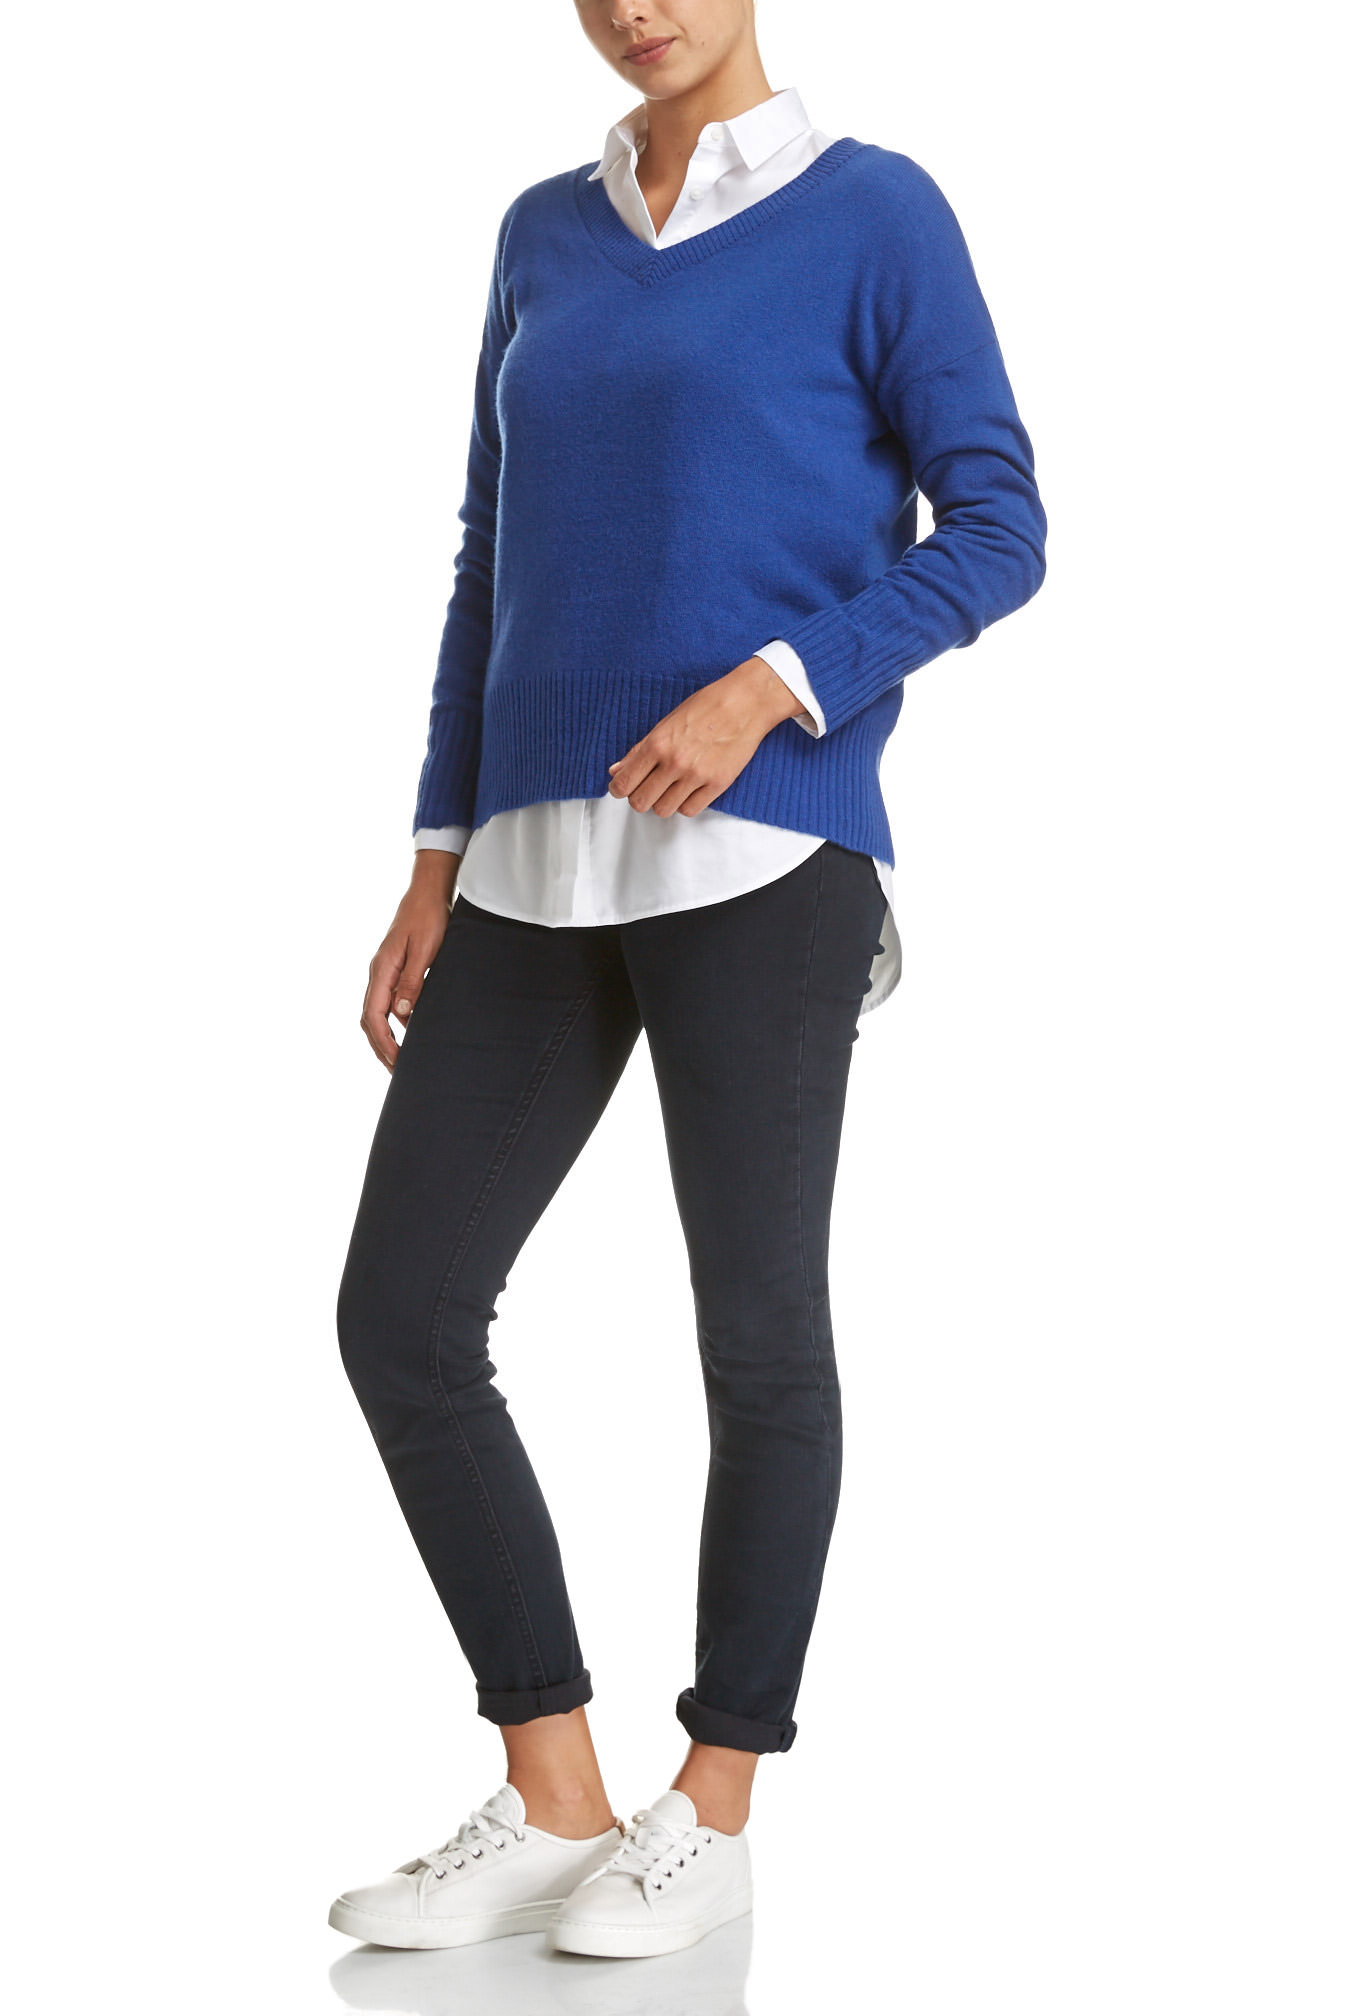 NEW-Sportscraft-WOMENS-Sandy-Curved-Hem-Knit-Jumpers-Cardigans